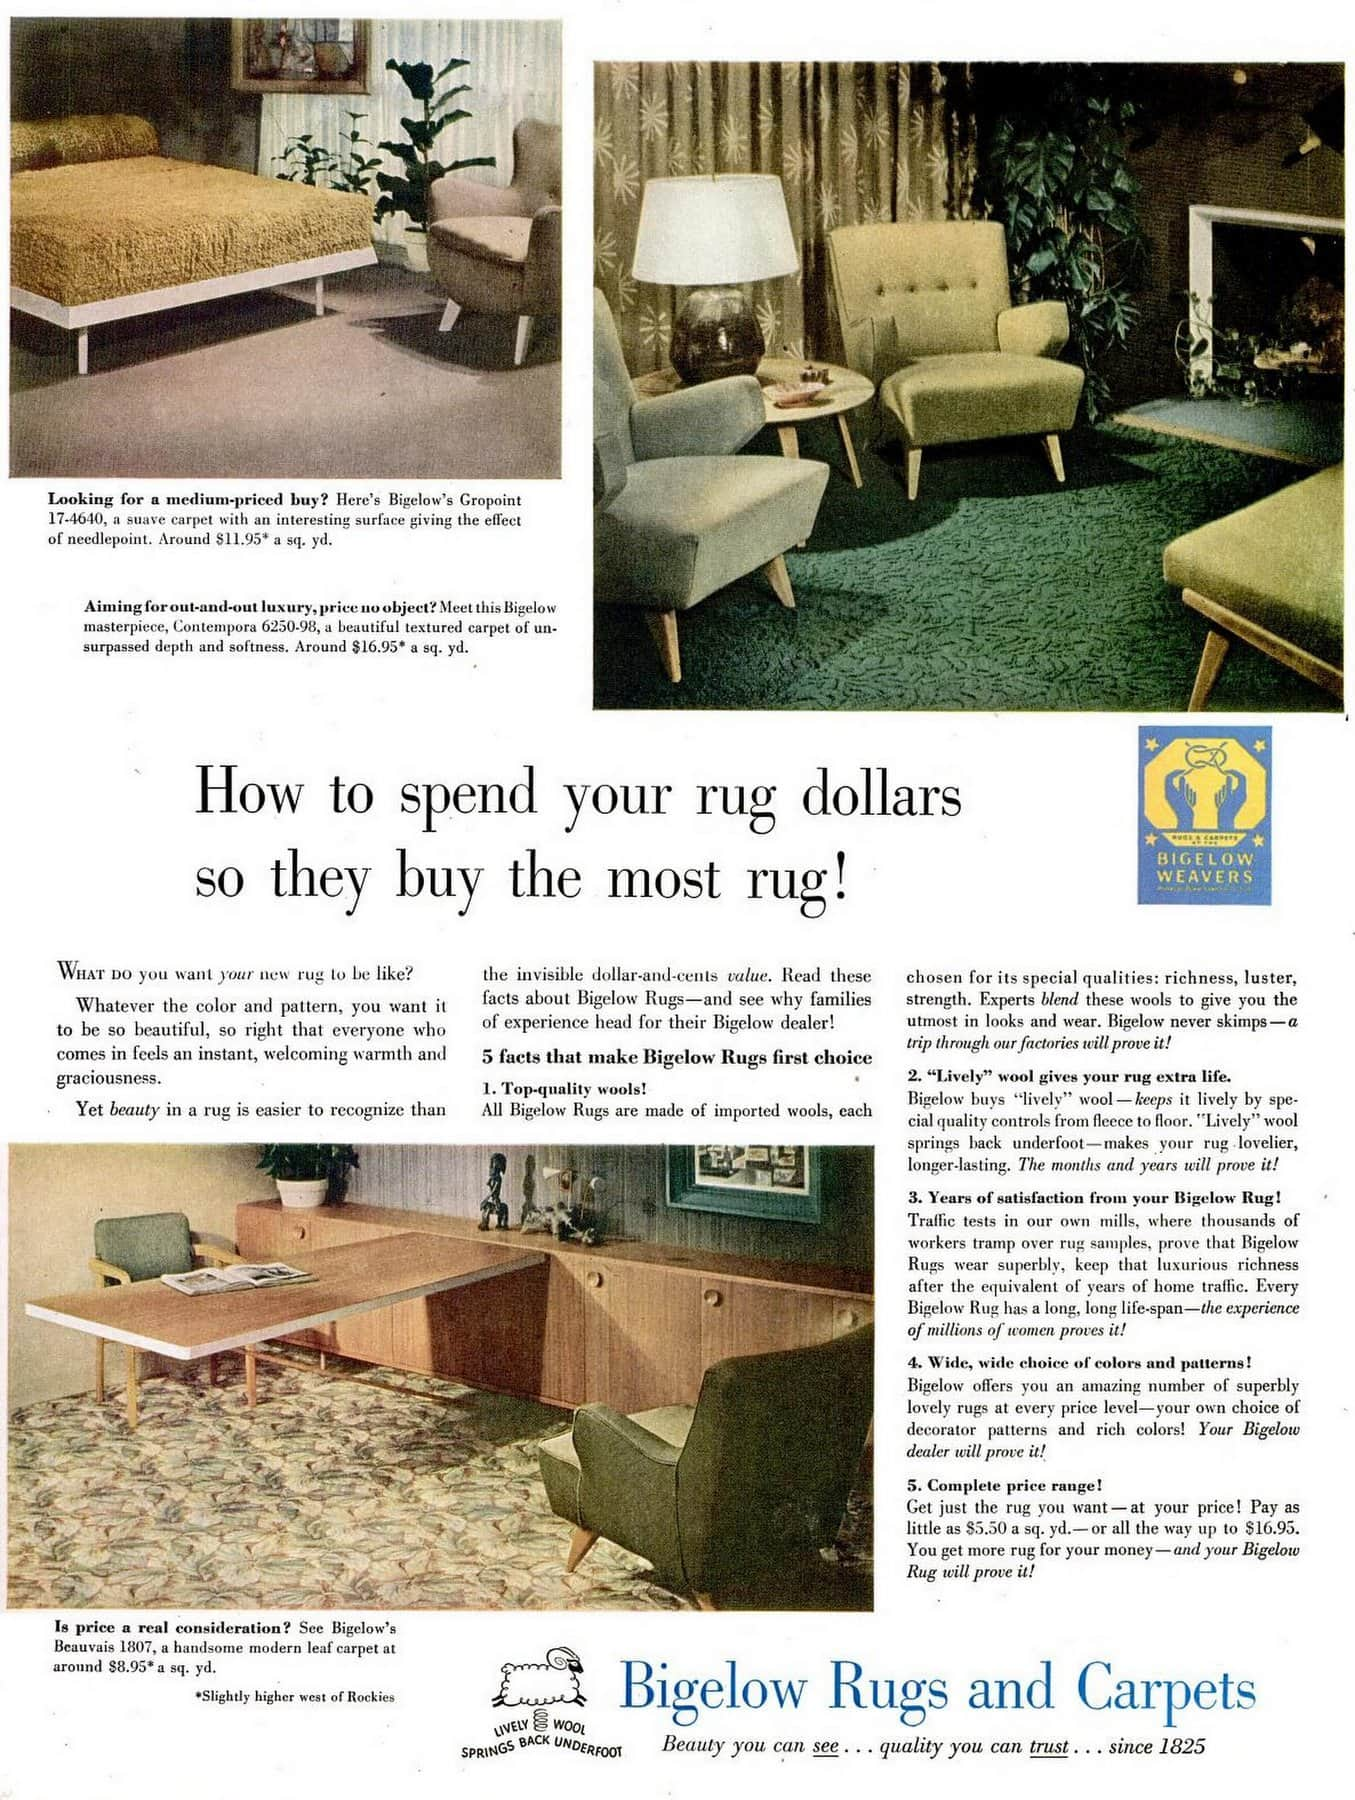 Bigelow rugs and carpets from 1948